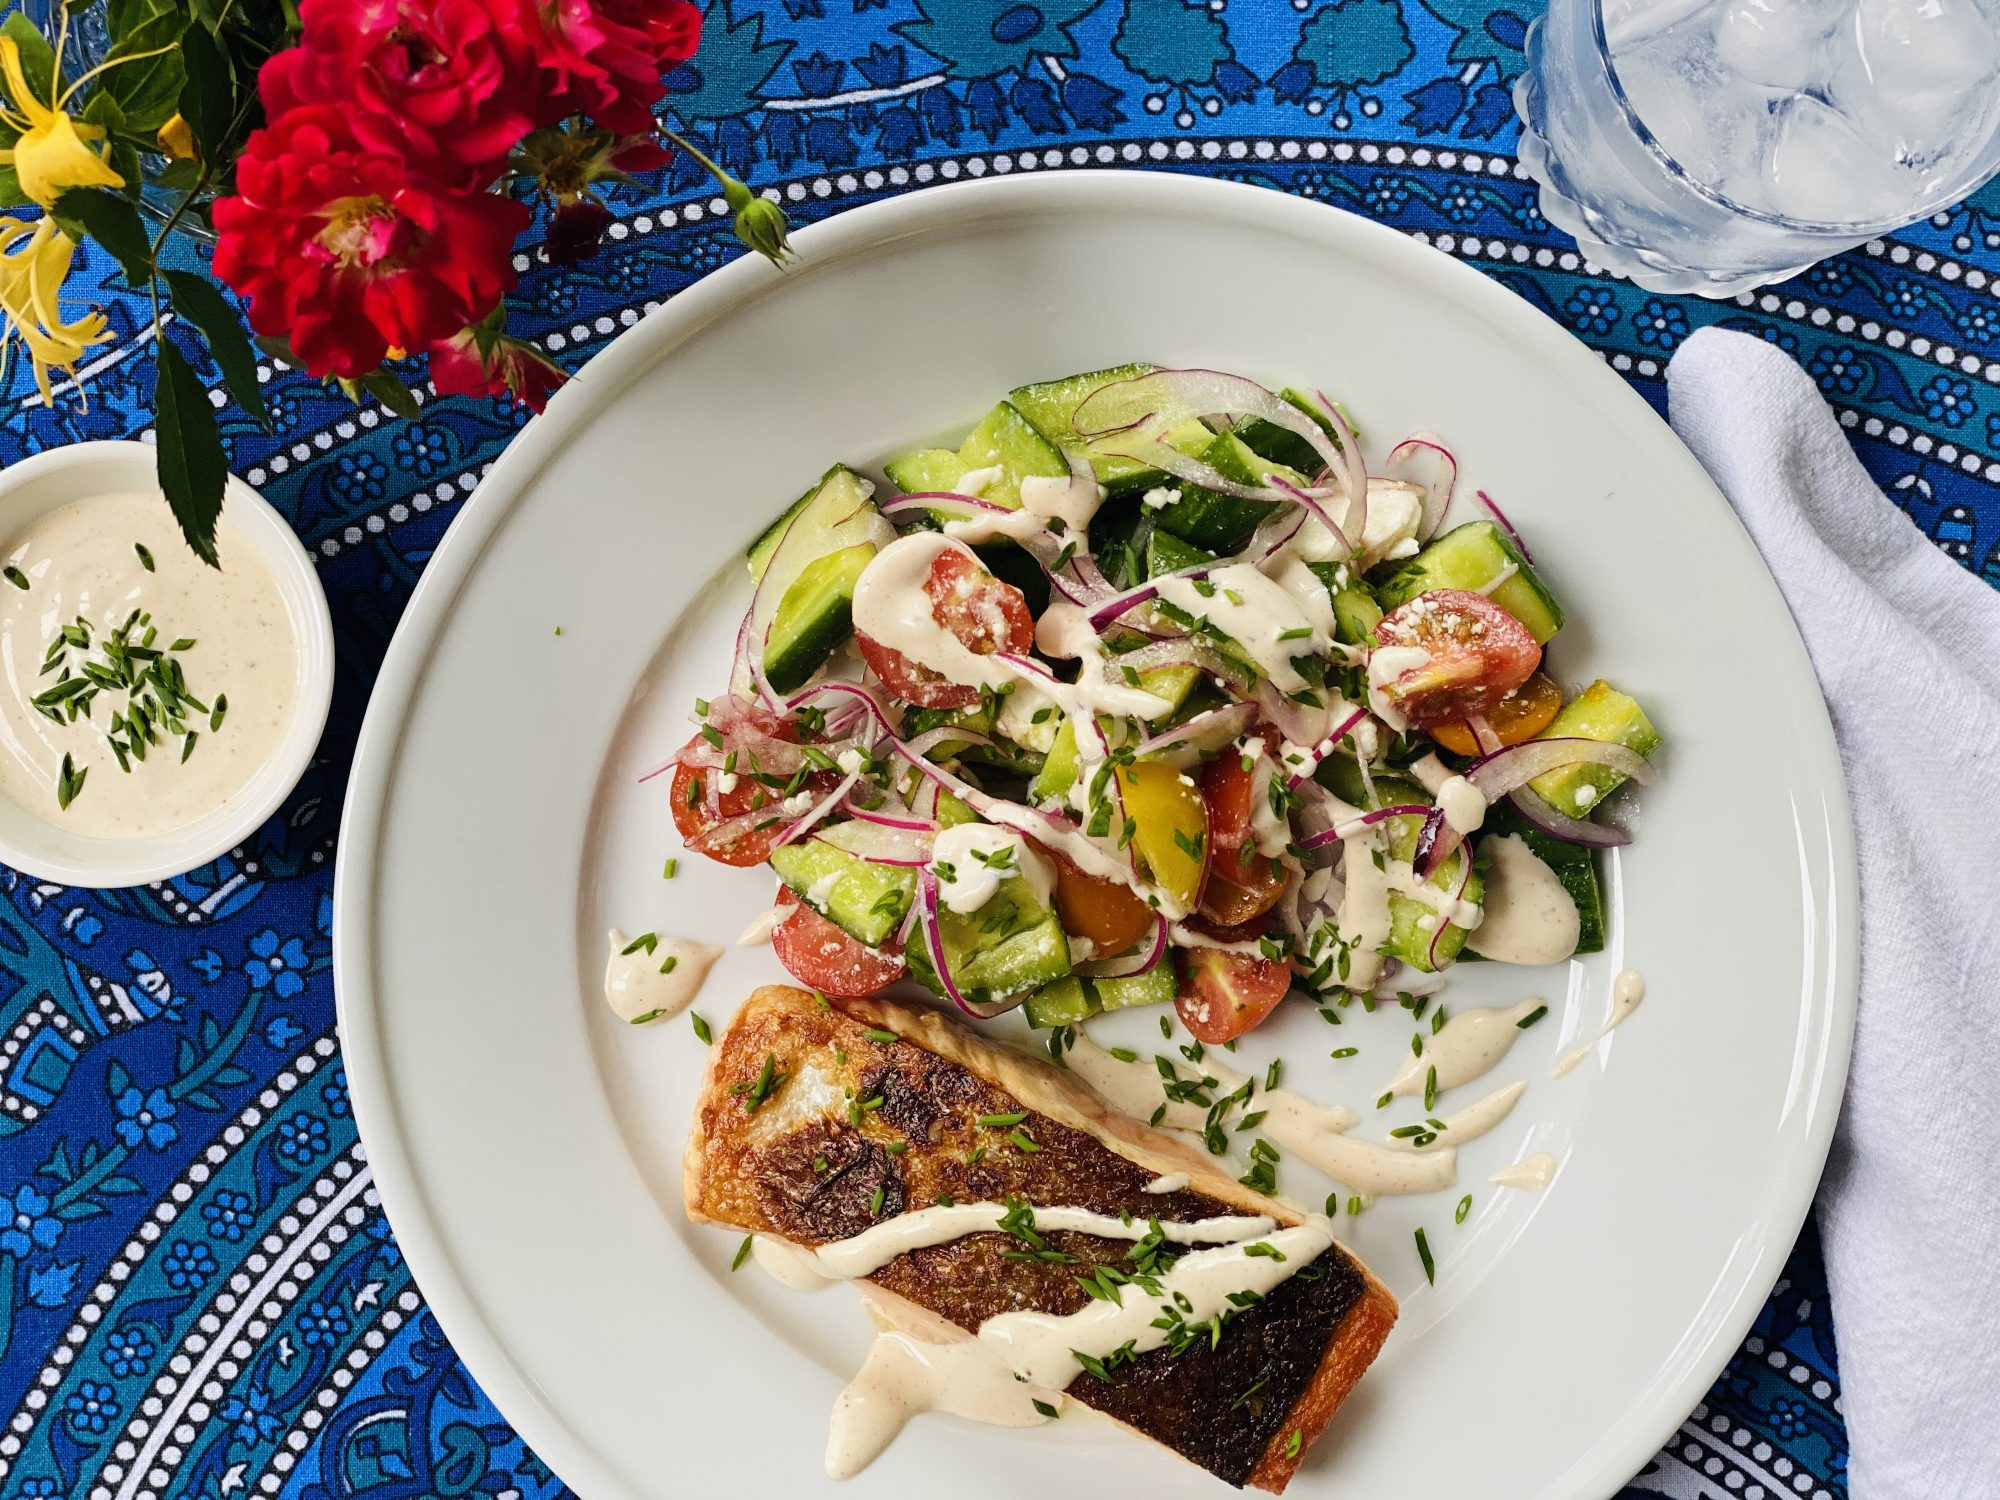 mr - Crispy Salmon With Cucumber-Tomato Salad and White Barbecue Sauce Image